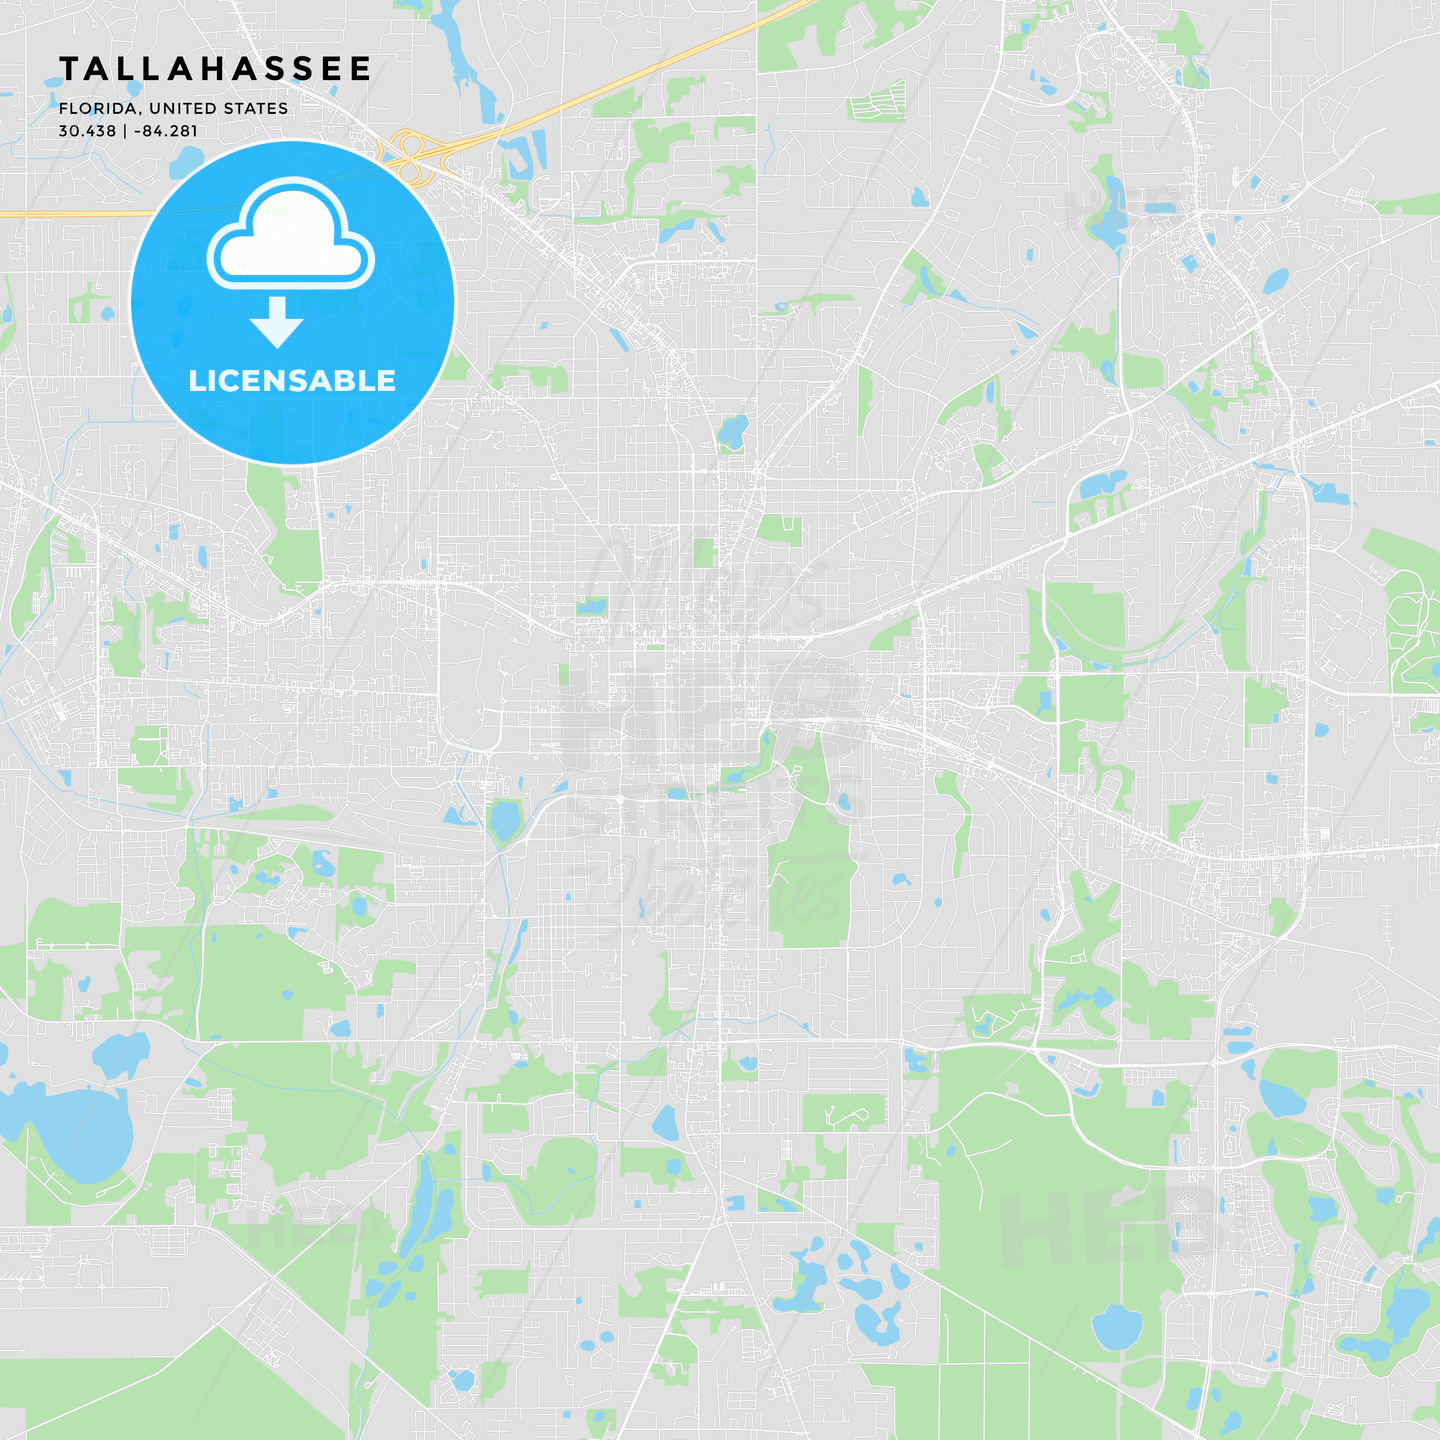 Printable street map of Tallahassee, Florida